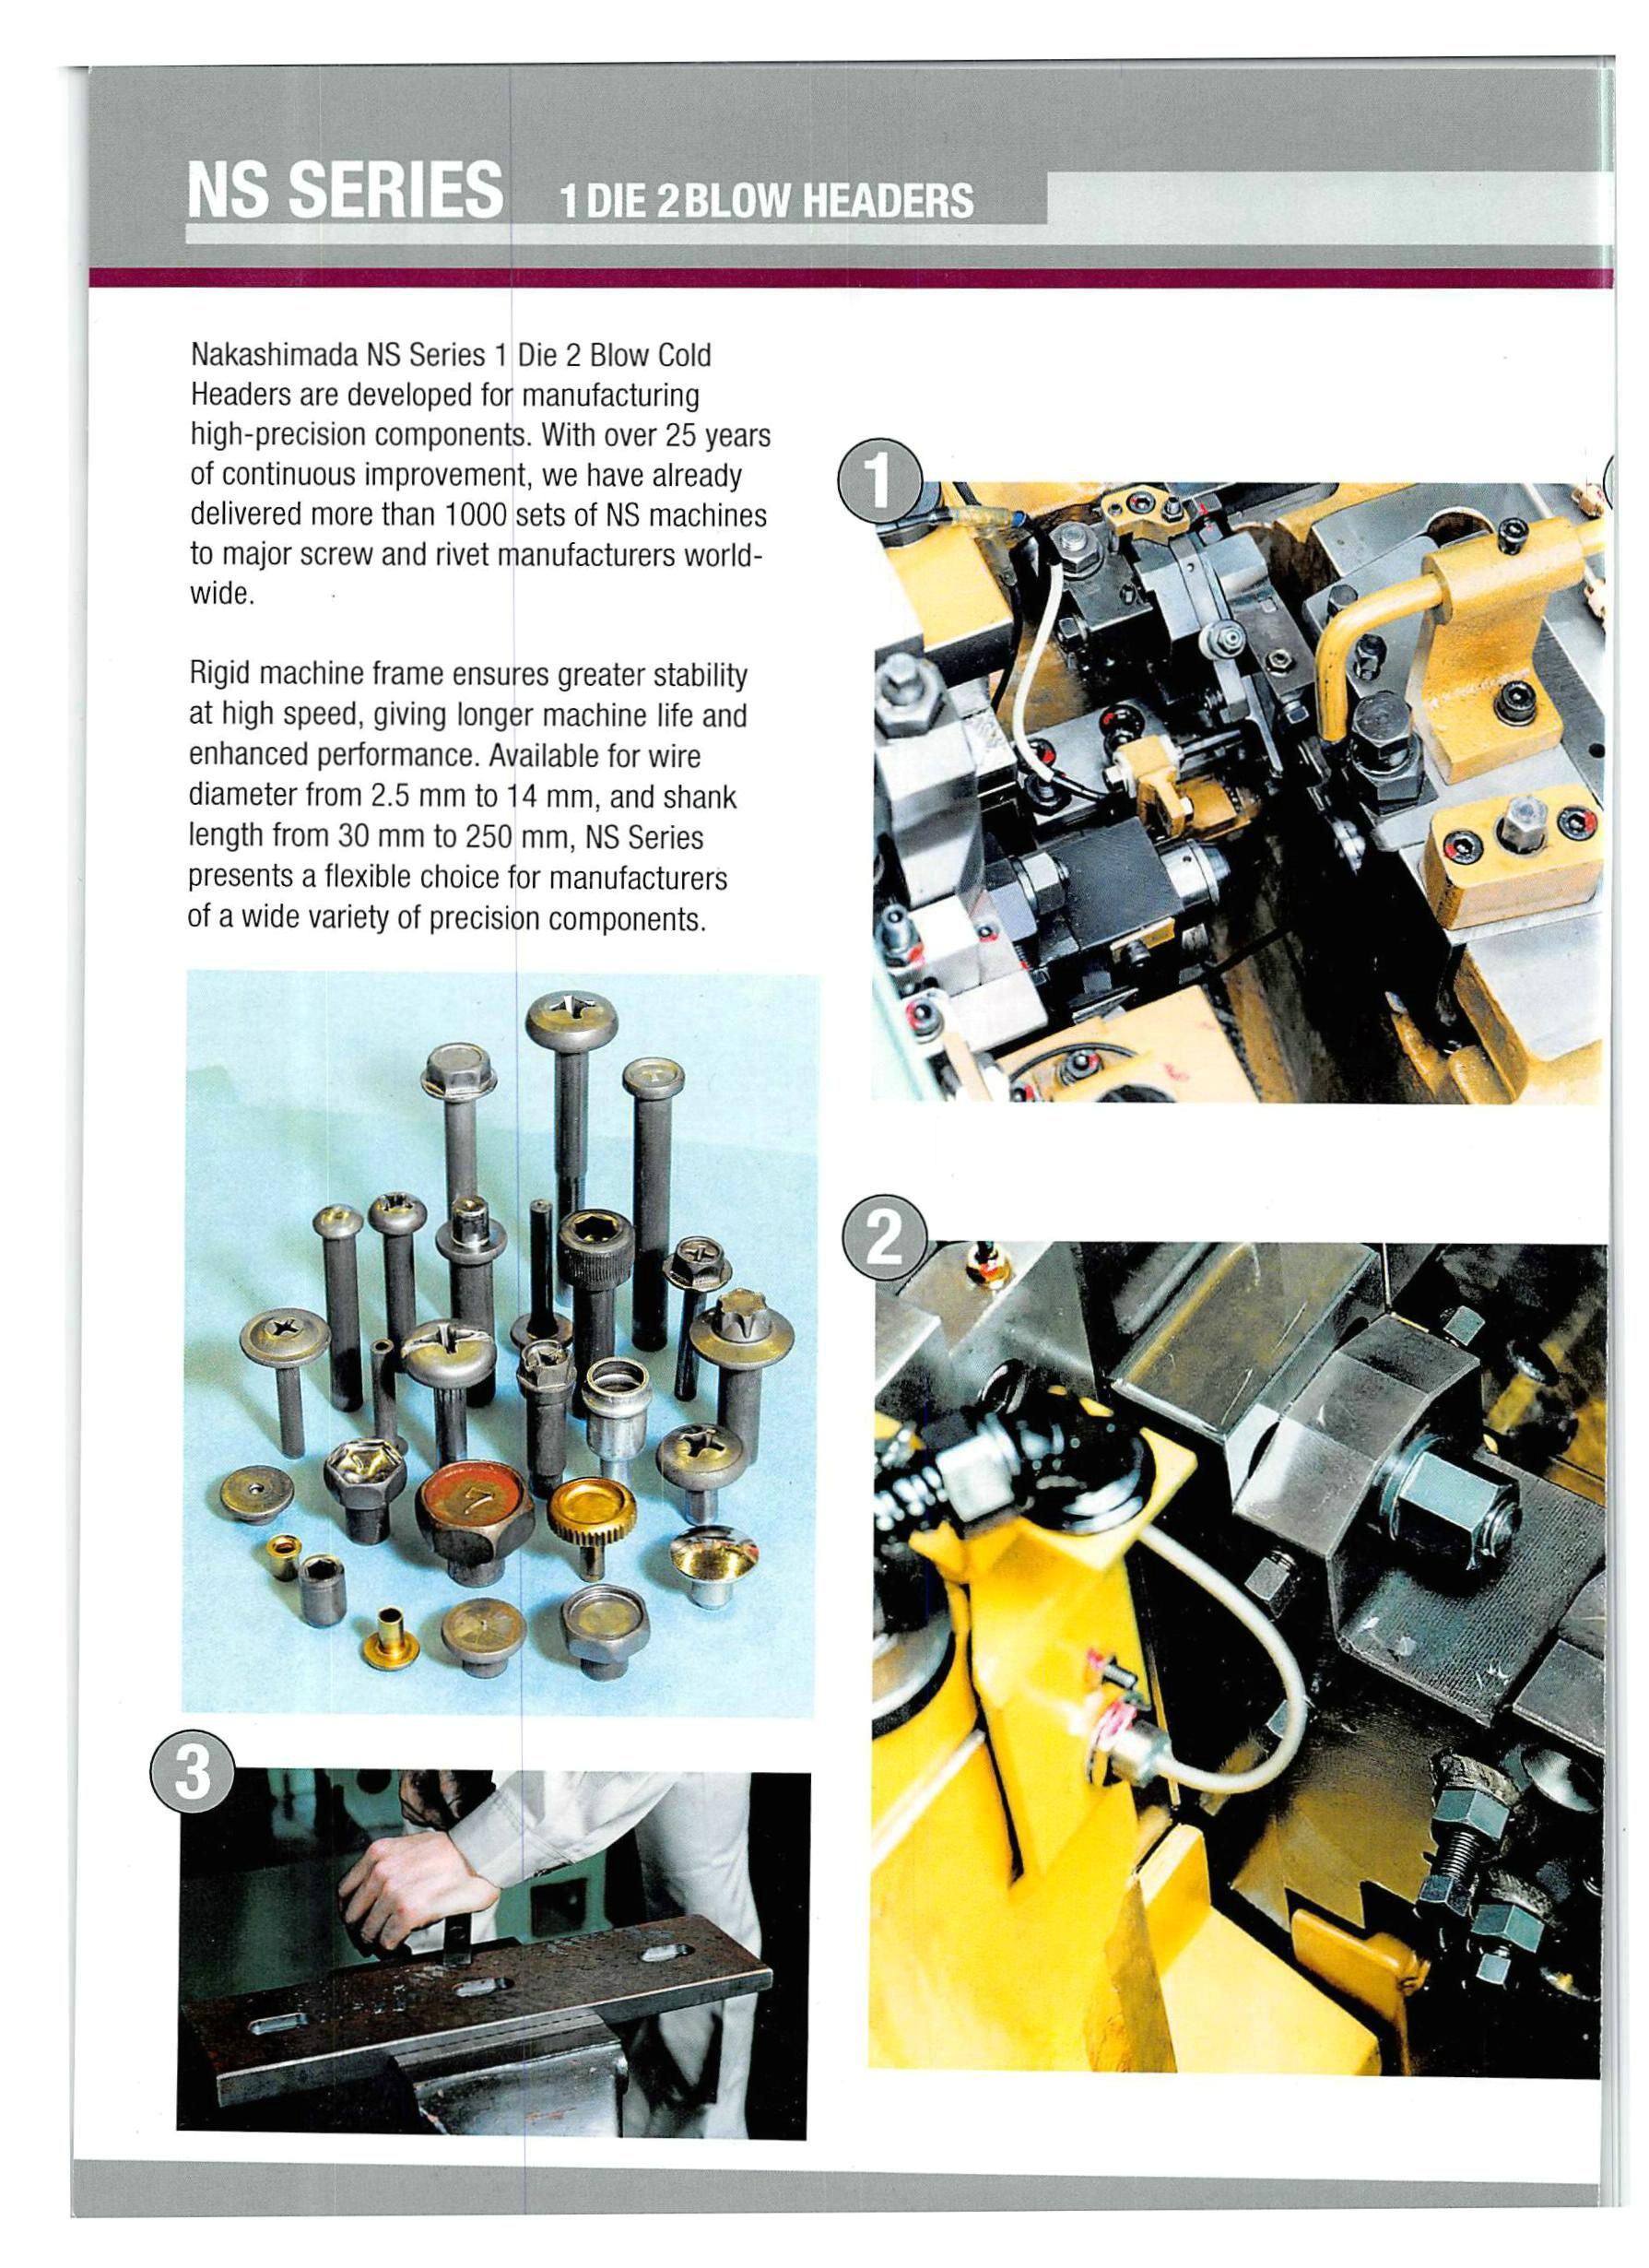 Nakashimada NS series 1 Die 2 Blow Cold Headers are developed for manufacturing high precision components.